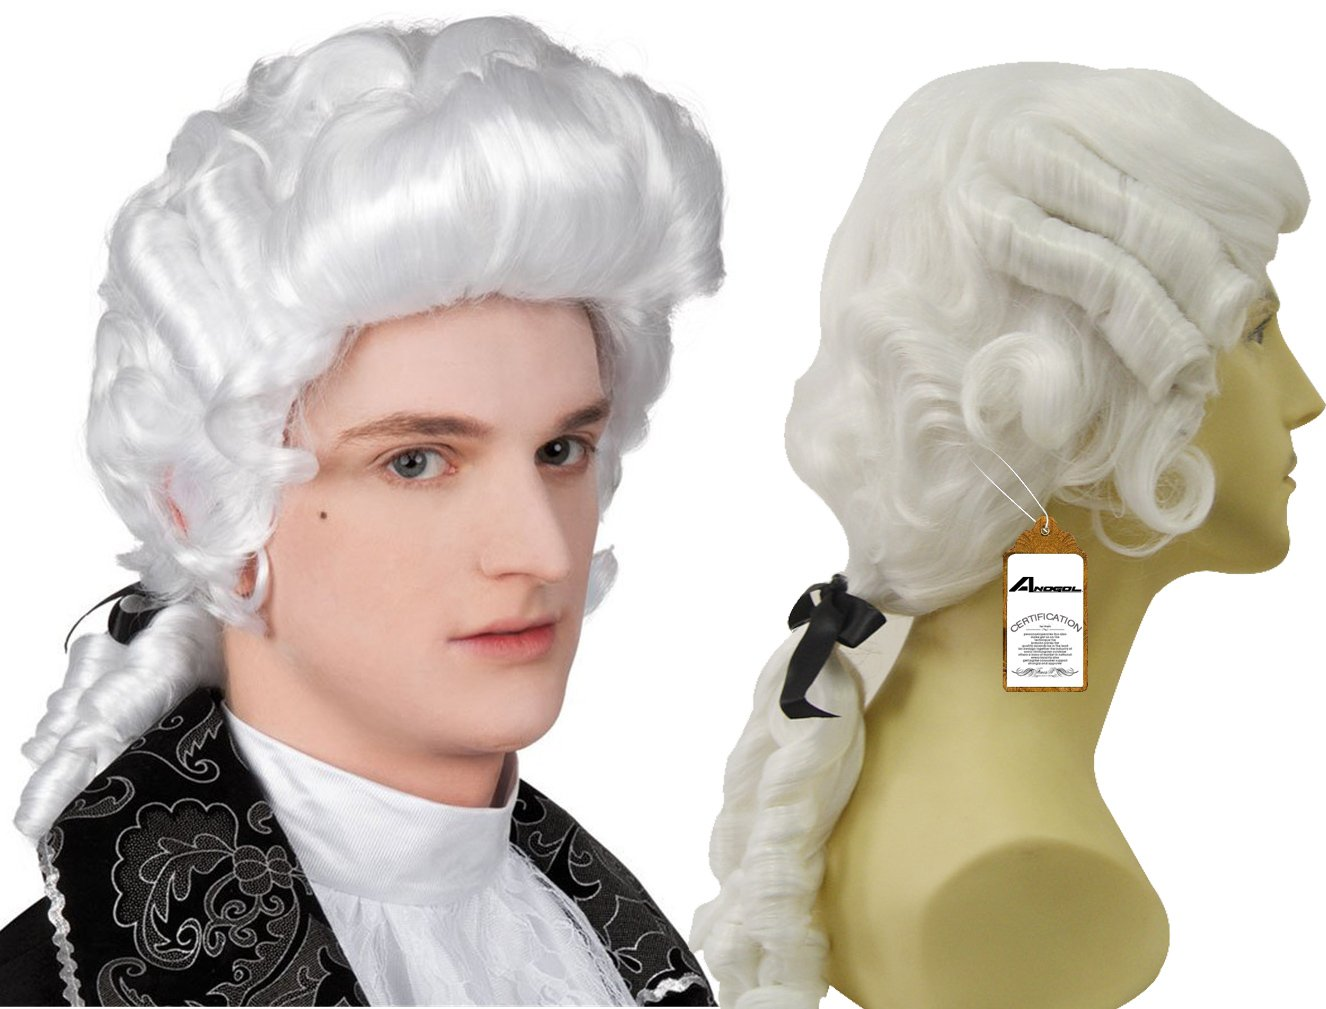 Hair+Cap White Curly Wig Cosplay Wig Synthetic Wig for Men White Cosplay Wig Cosplay Costume Wig Halloween